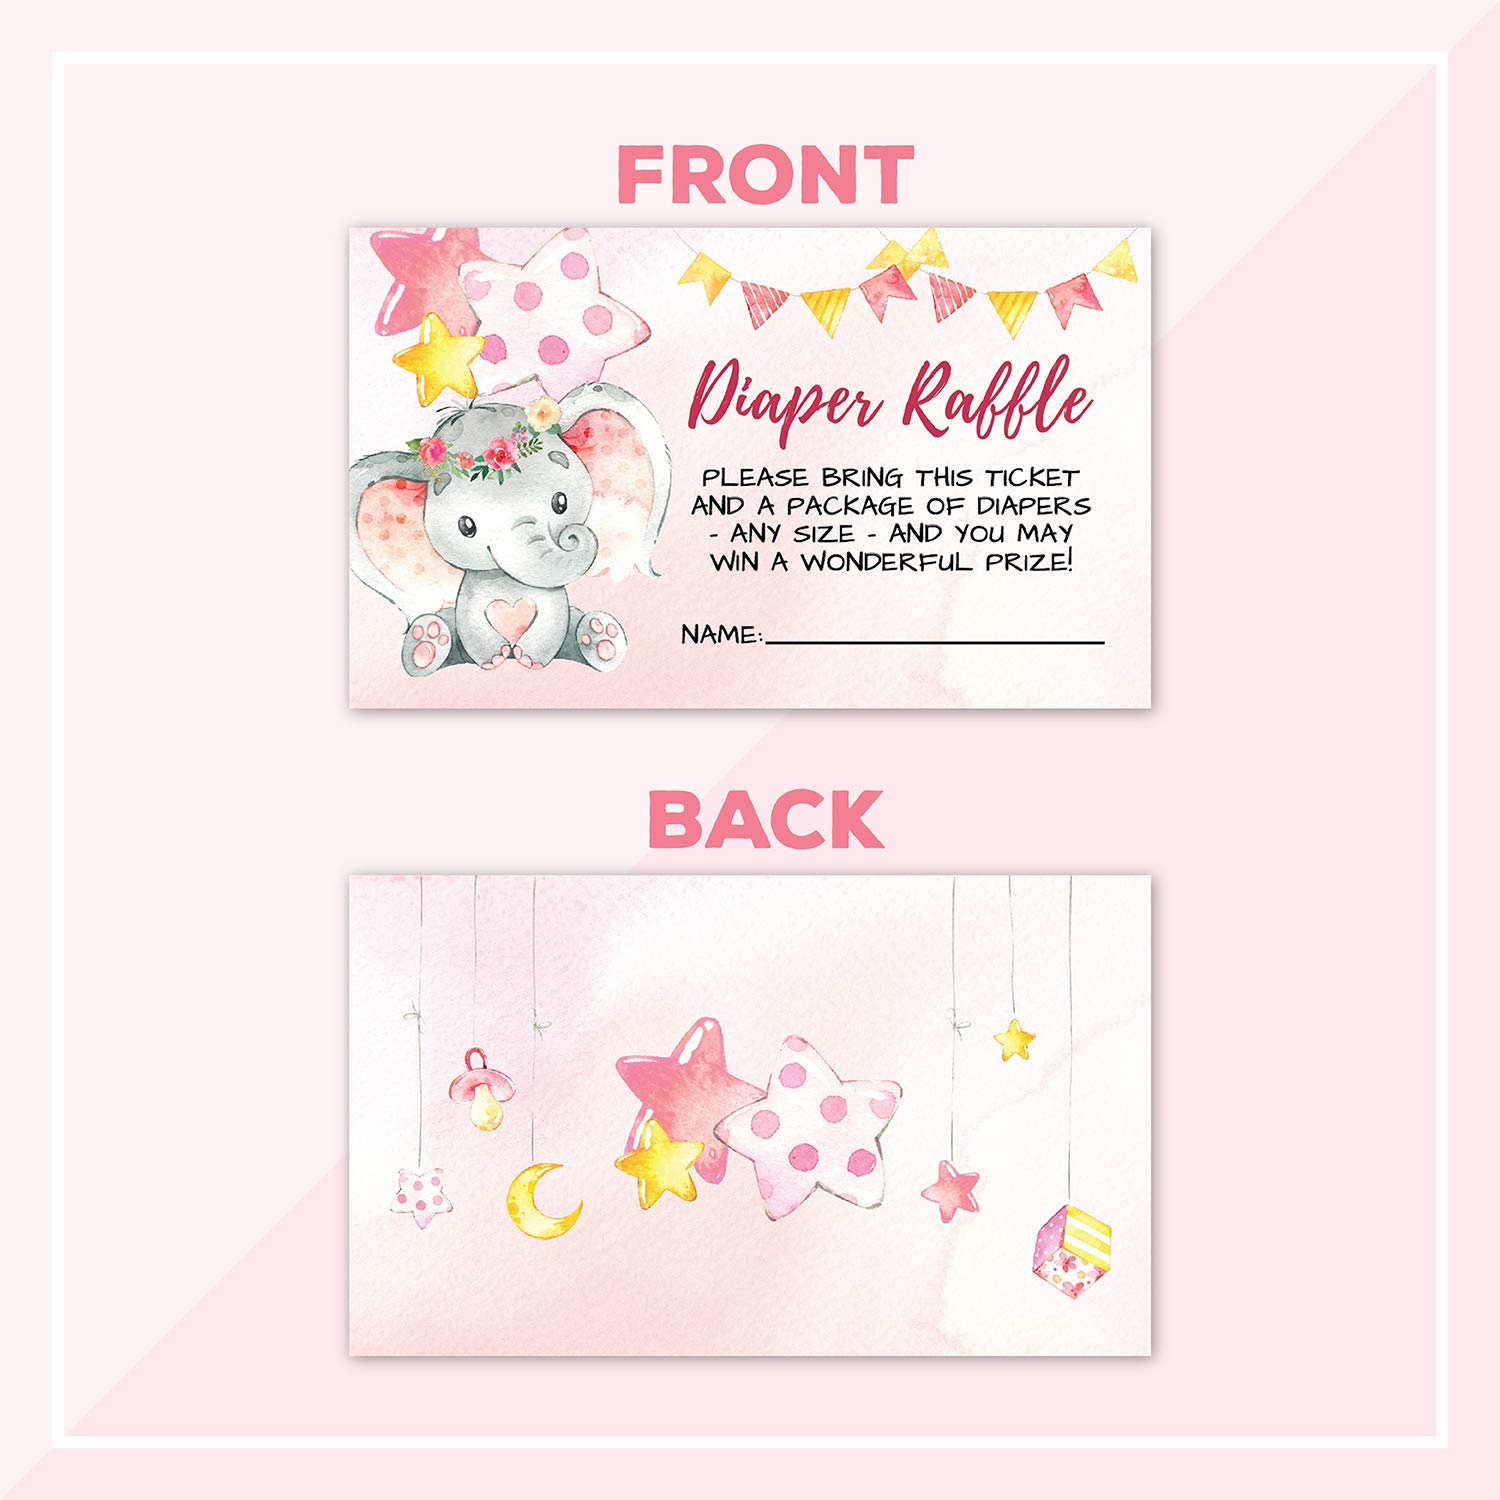 Deluxe Pink Elephant Baby Shower Invitations, Jungle, Tropical Safari Animals, Its A Girl Party Invites, Includes- 20 Each Large Double Sided 5 x 7 Invites, Raffle Tickets, and Book Request Inserts by Pink Pixie Studio (Image #4)